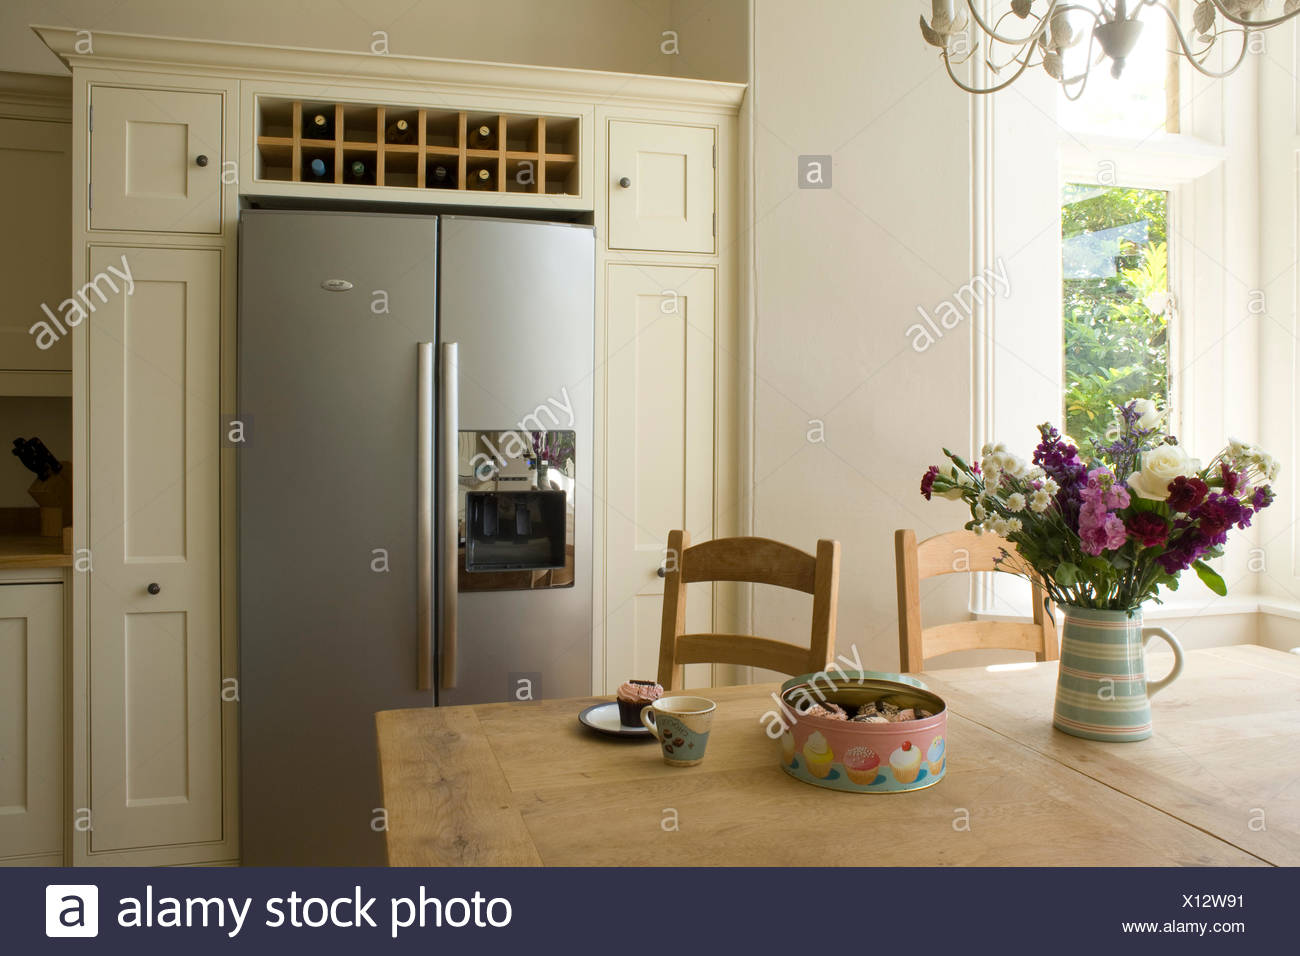 https www alamy com vase of summer flowers on table in country kitchen with wine storage above american style fridge freezer image276044301 html